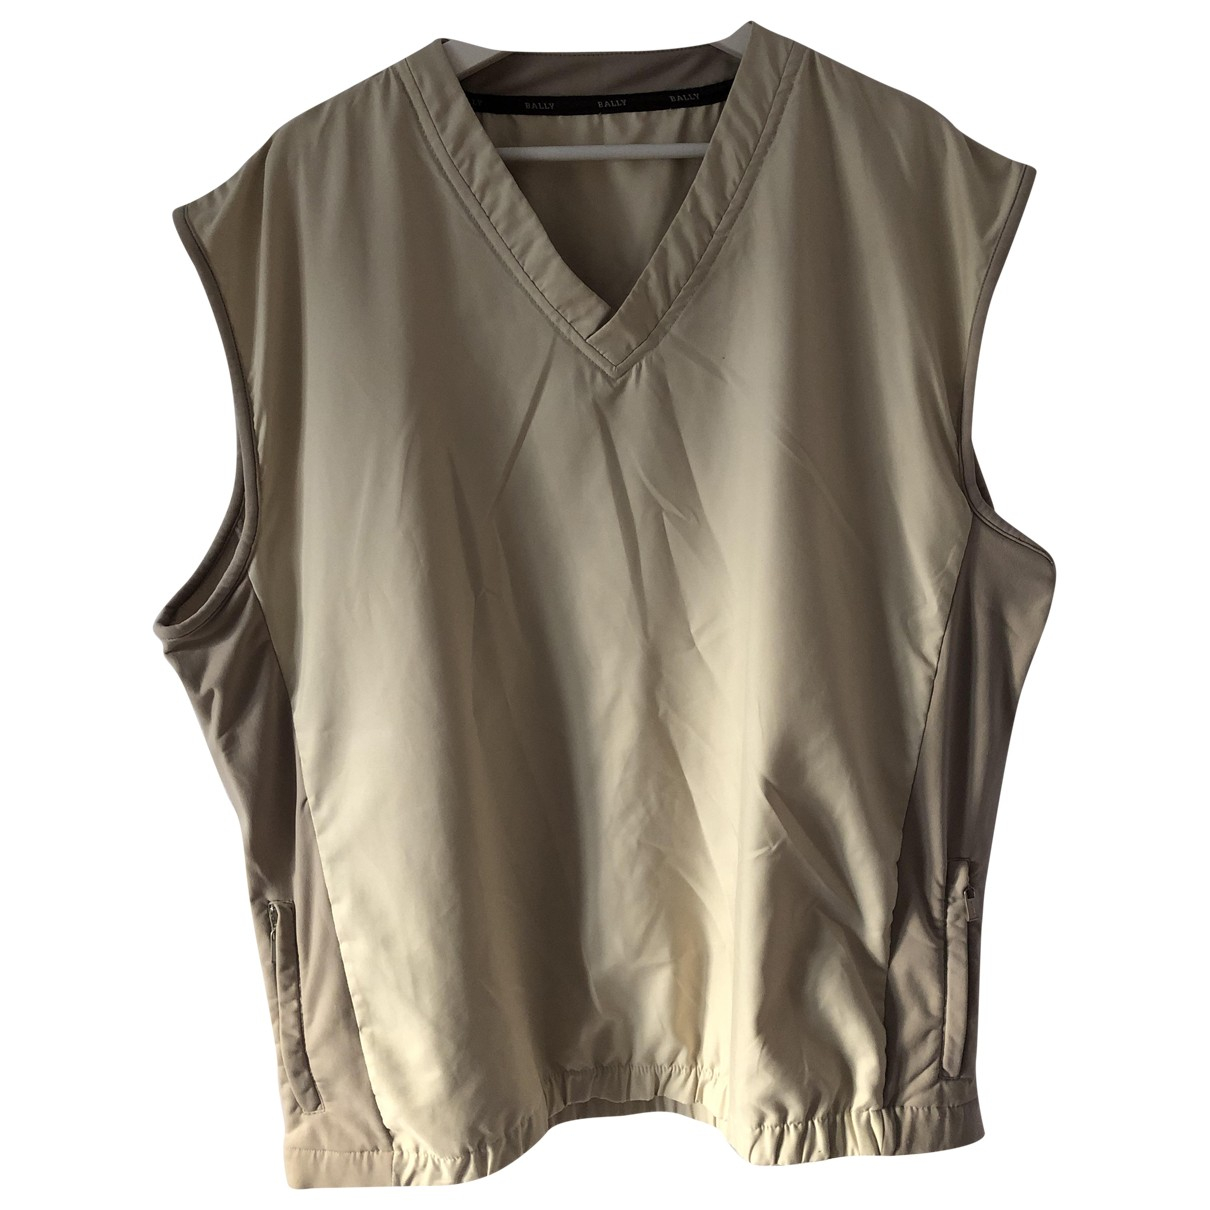 Bally - Tee shirts   pour homme - beige